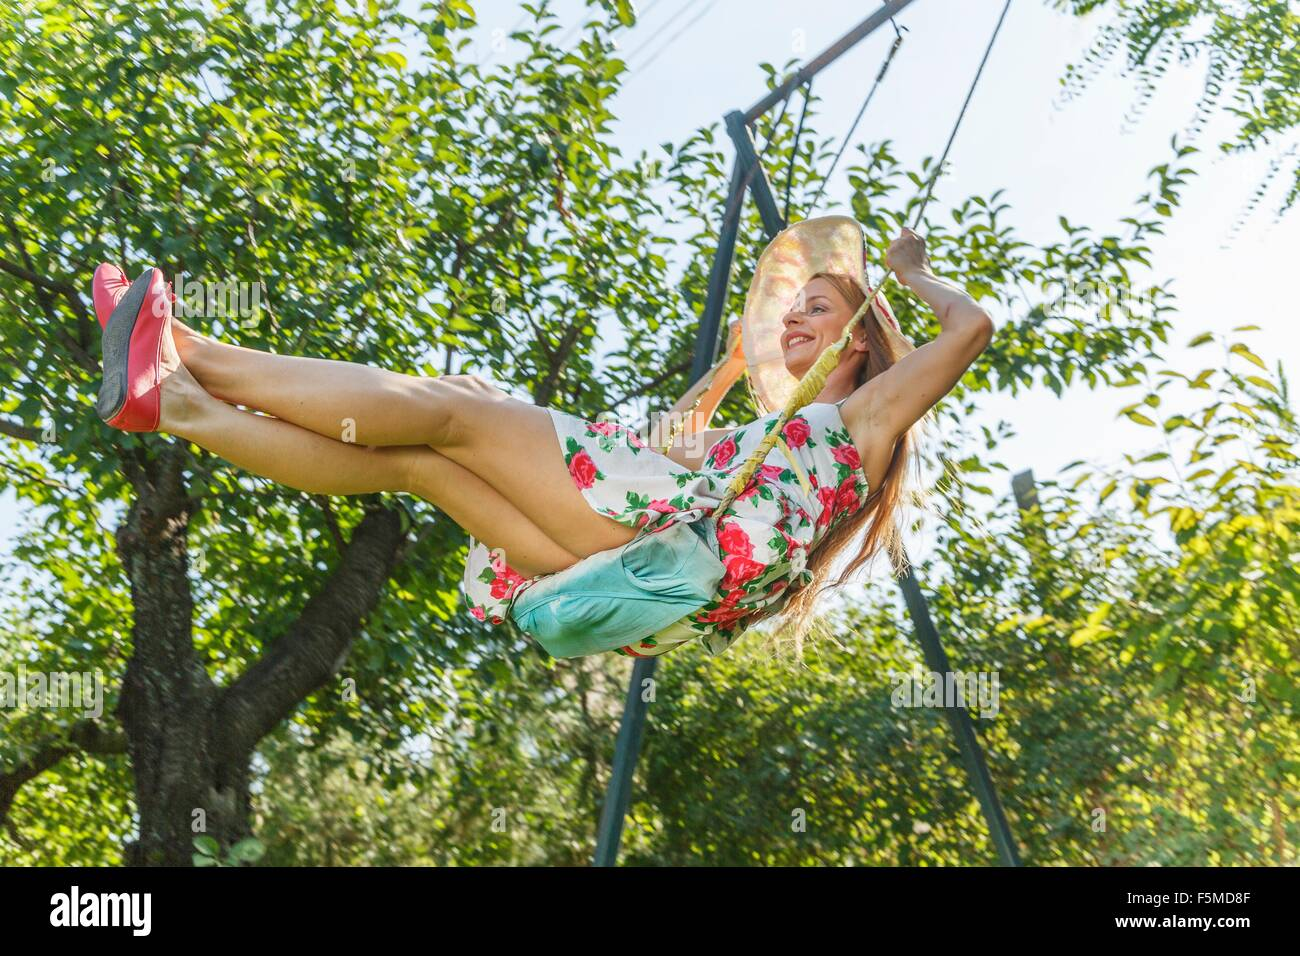 Mid adult woman swinging on garden swing, low angle view Stock Photo